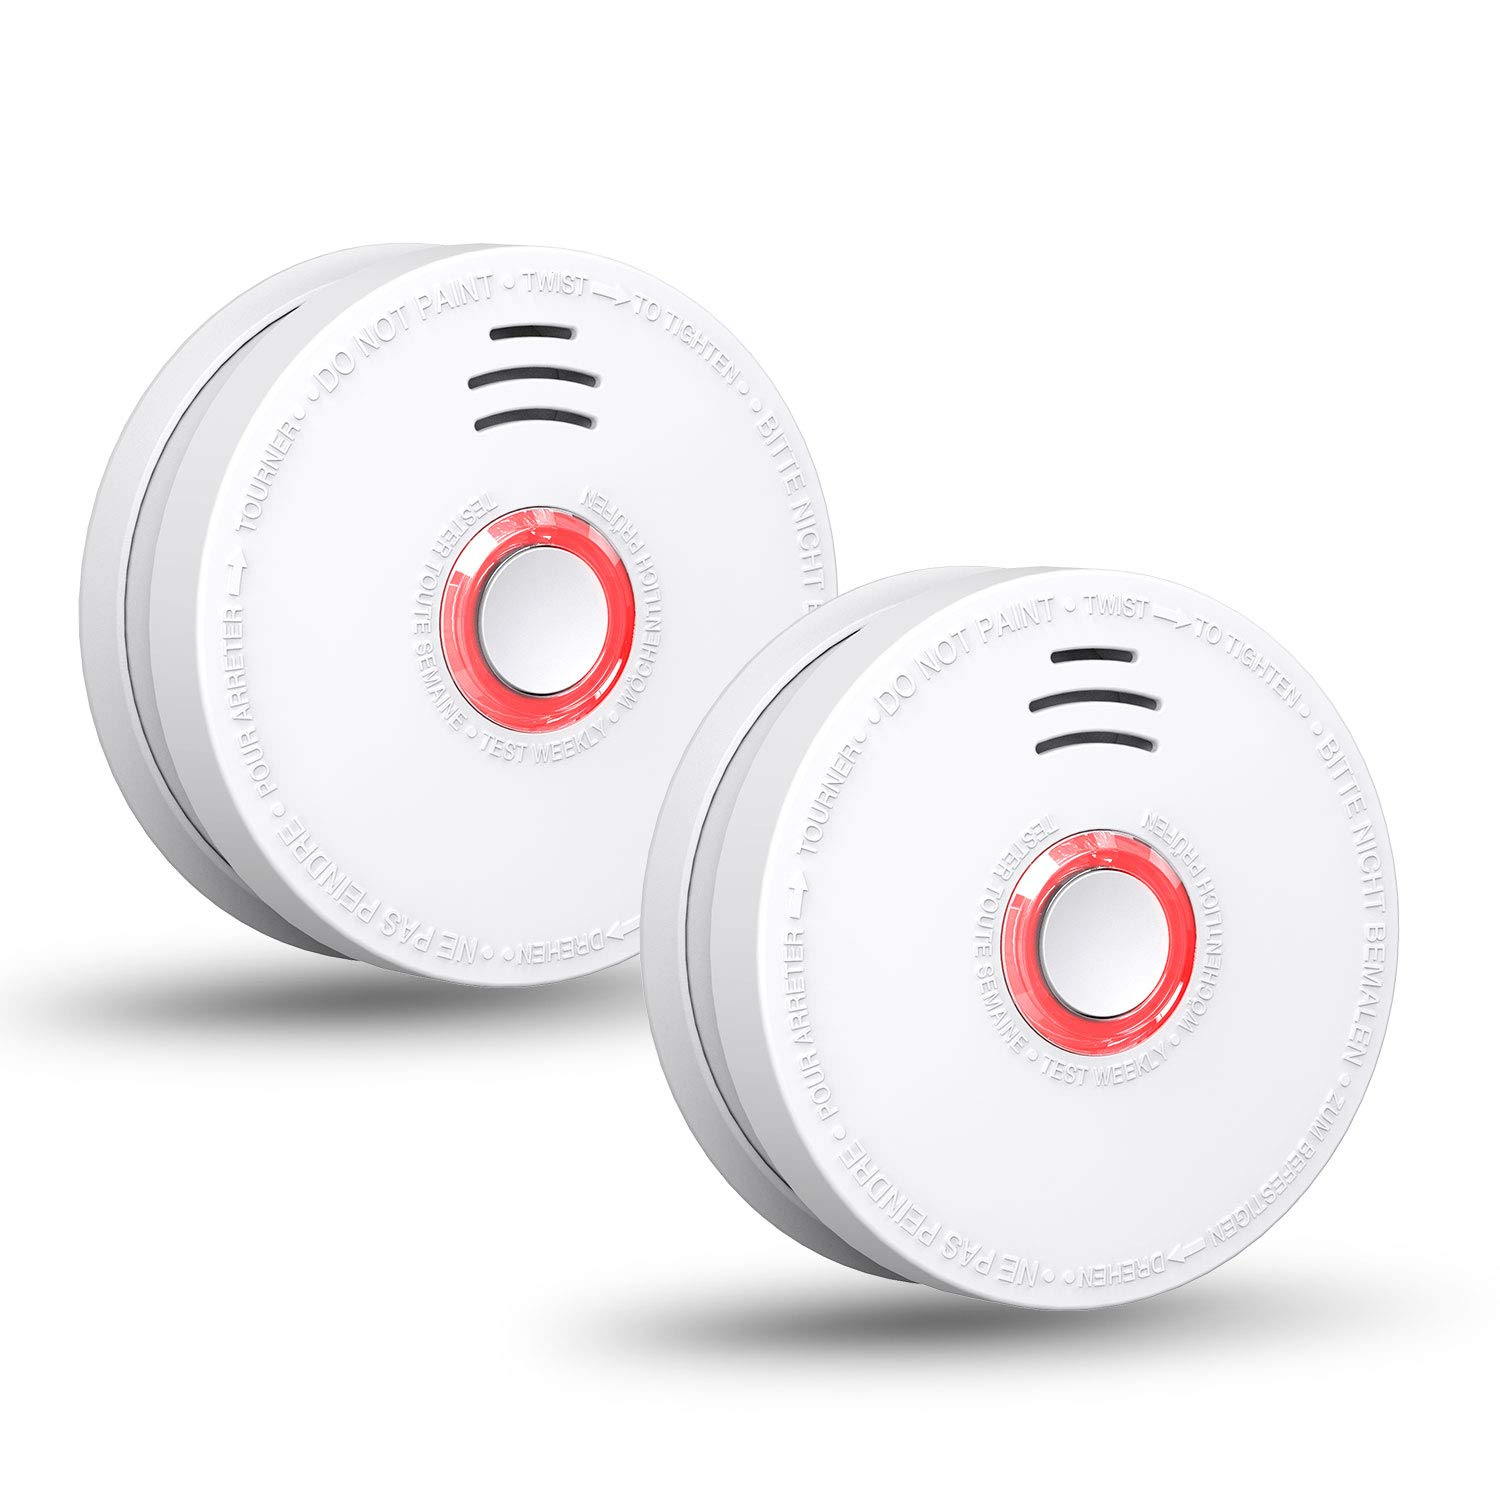 SITERWELL Smoke Detector - Replacable 9V Battery Operated Smoke Alarm with Photoelectric Sensor, 10-Year Life Time Fire Alarm with UL Listed, Fire Safety for Kitchen,Home,Hotel, GS528A, 2 Packs